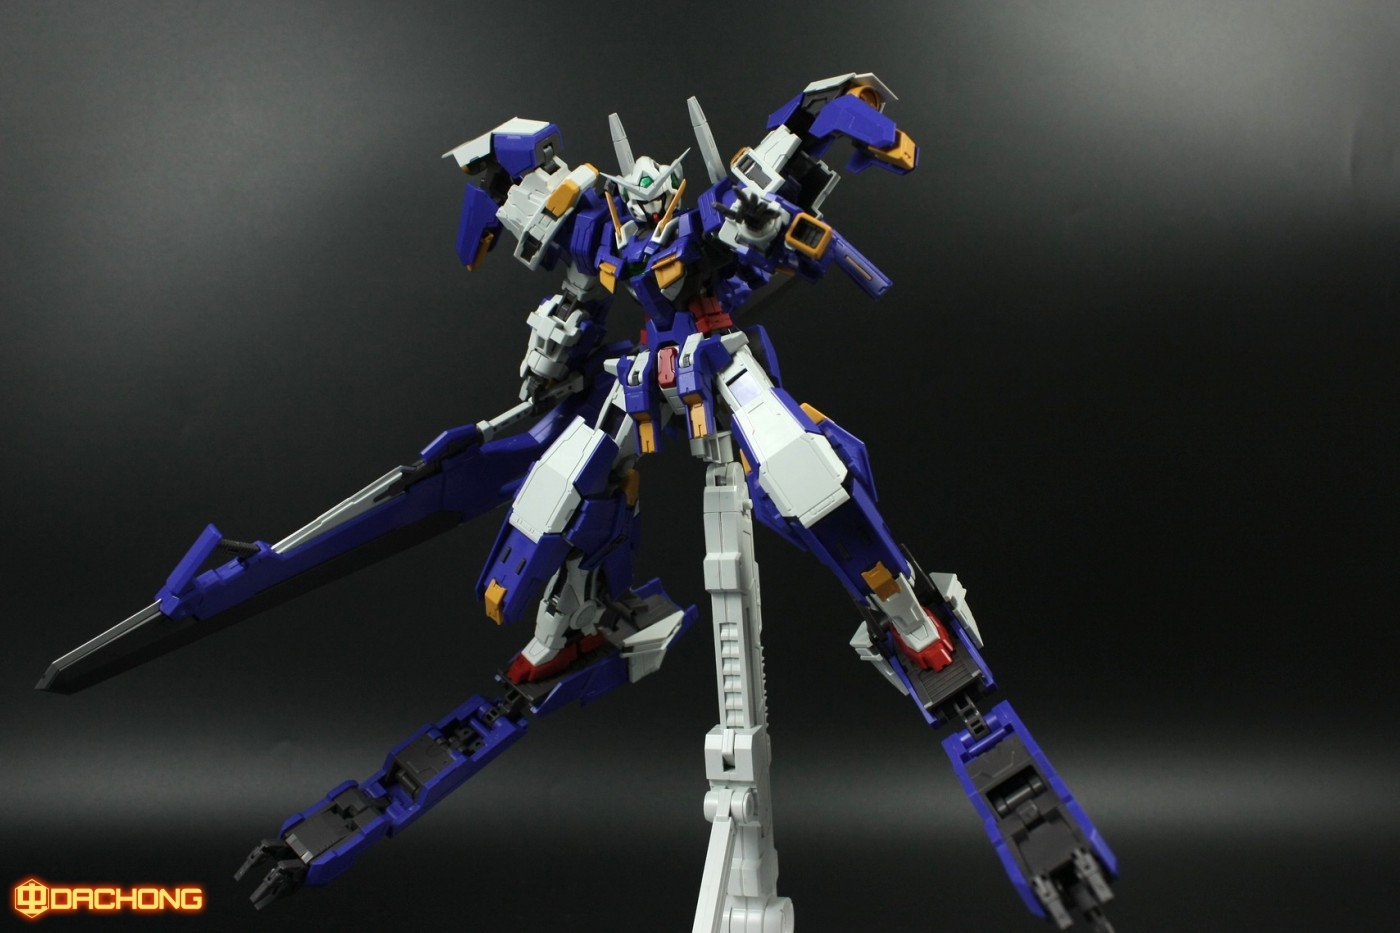 S254_MG_exia_HS_review_inask_105.jpg